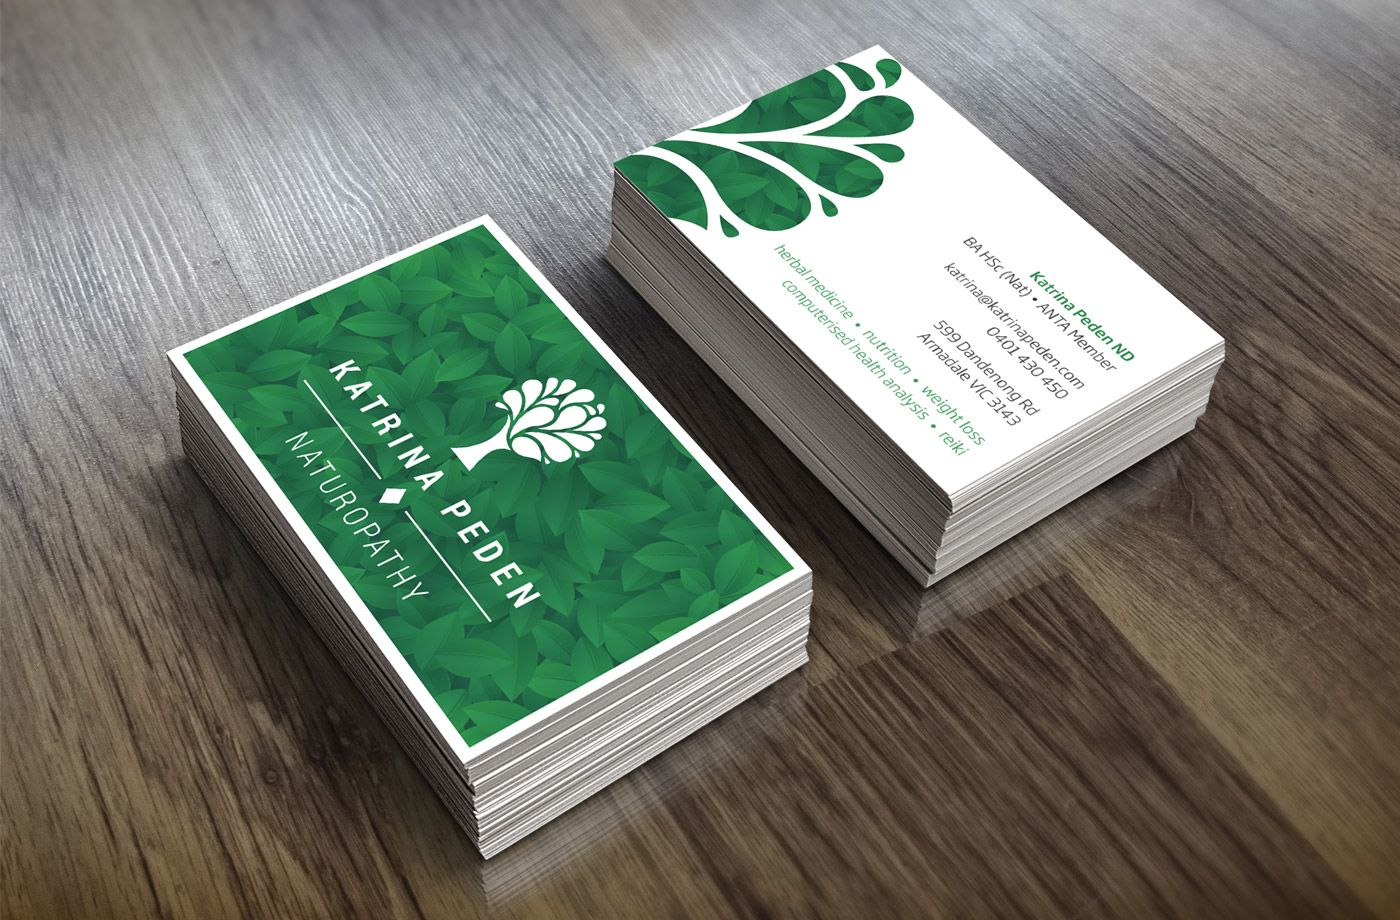 we offer a variety of #print options including rounded corners and